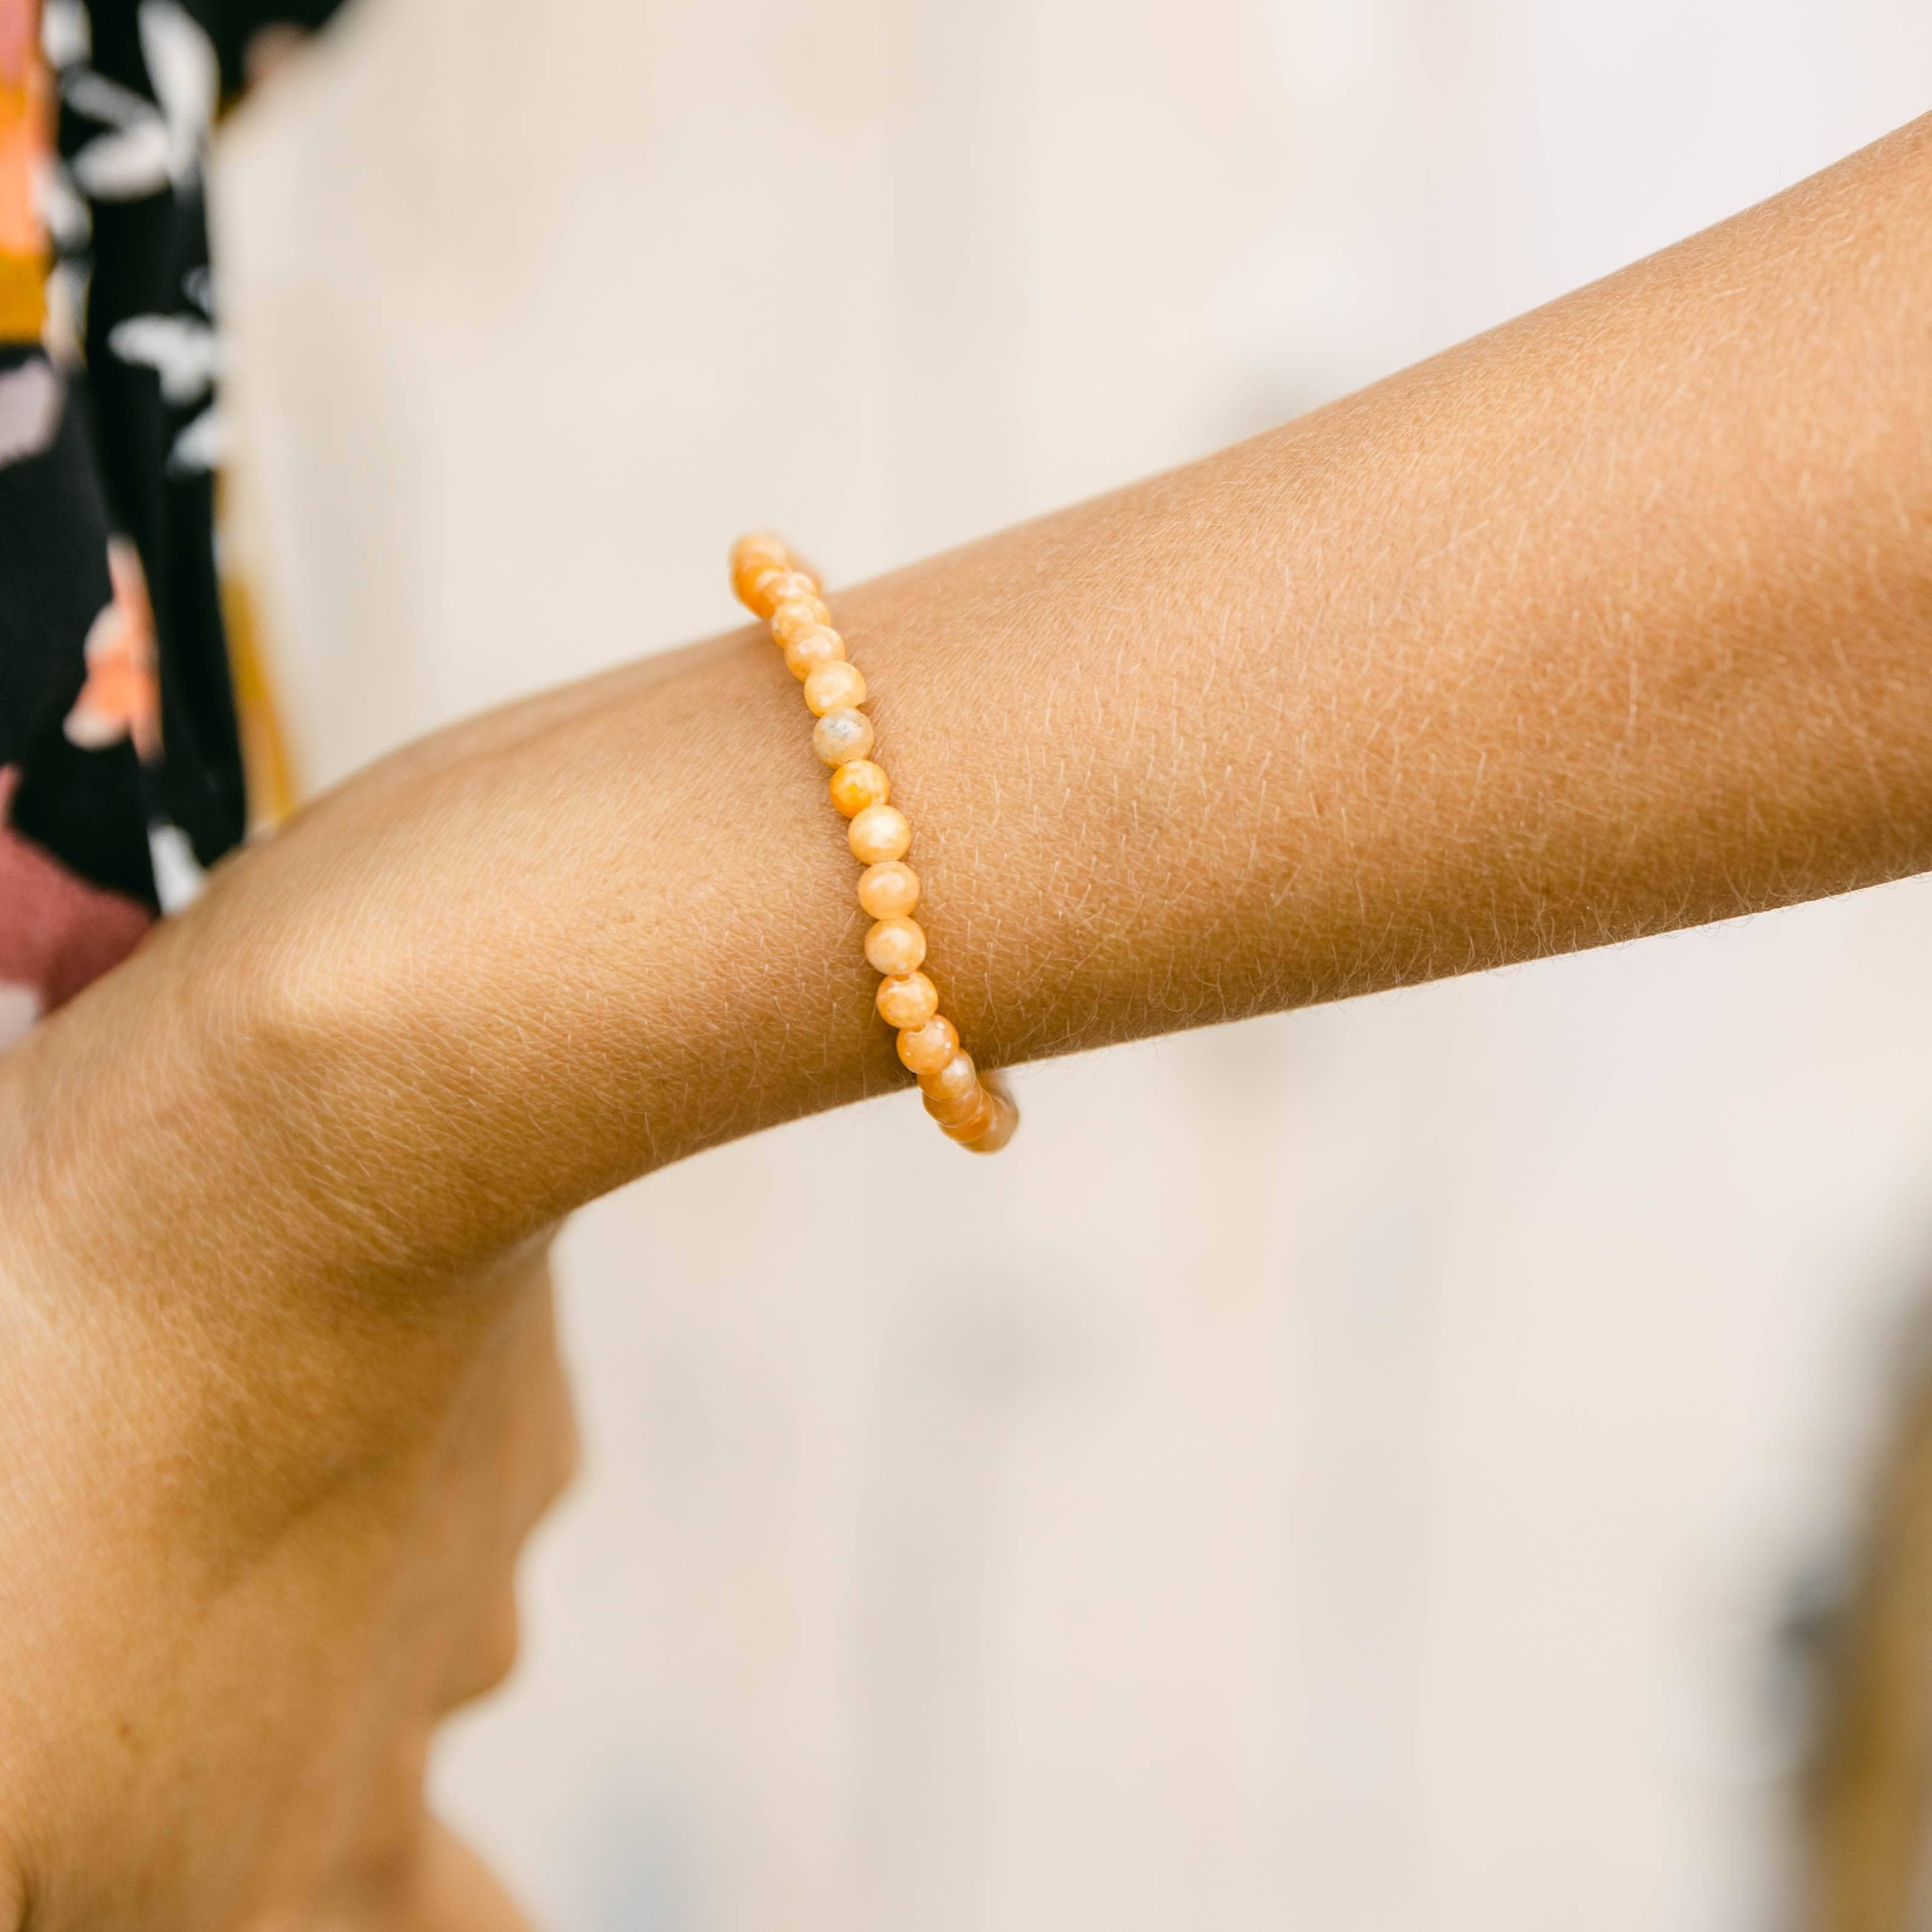 Orange Calcite Energy Bracelet